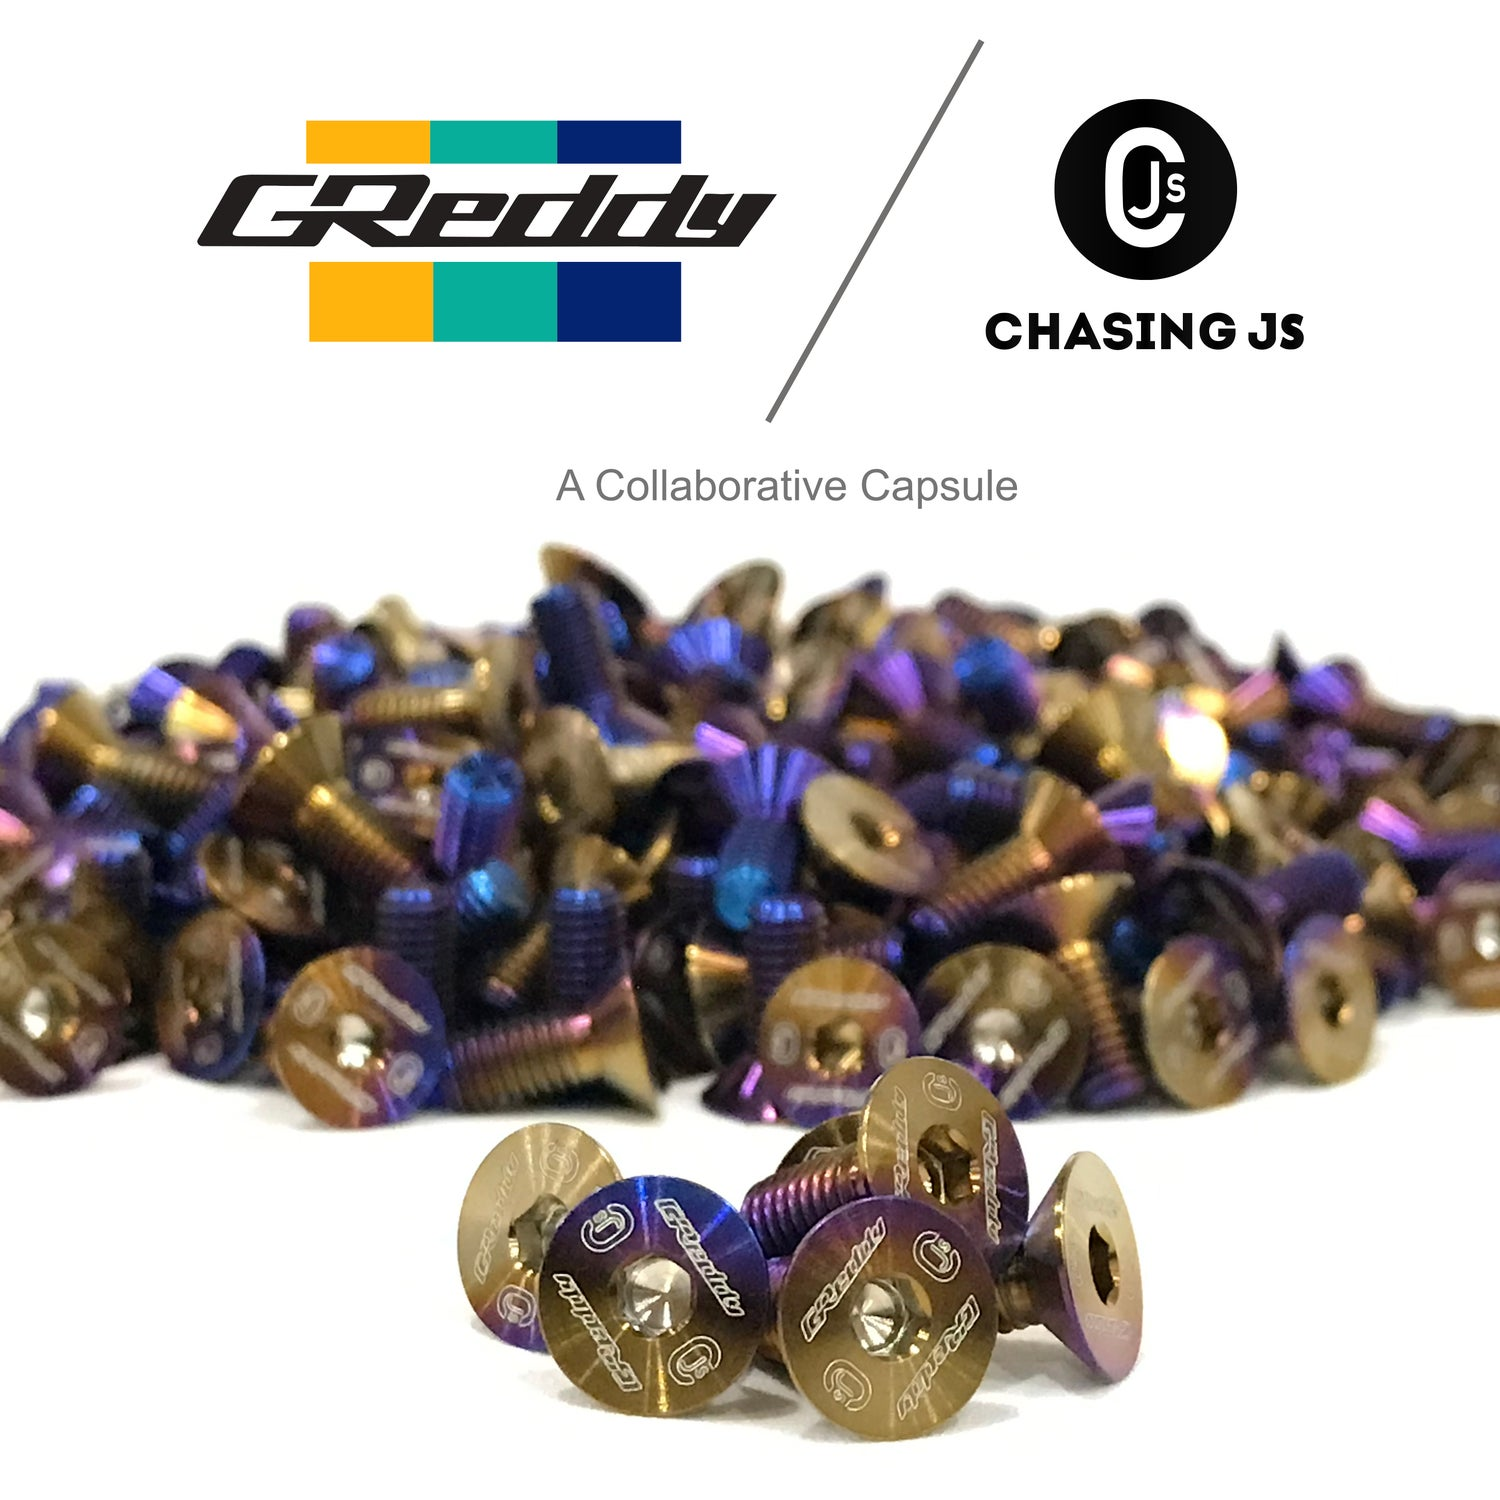 Image of GReddy X Chasing JS forge Titanium steering wheel bolts